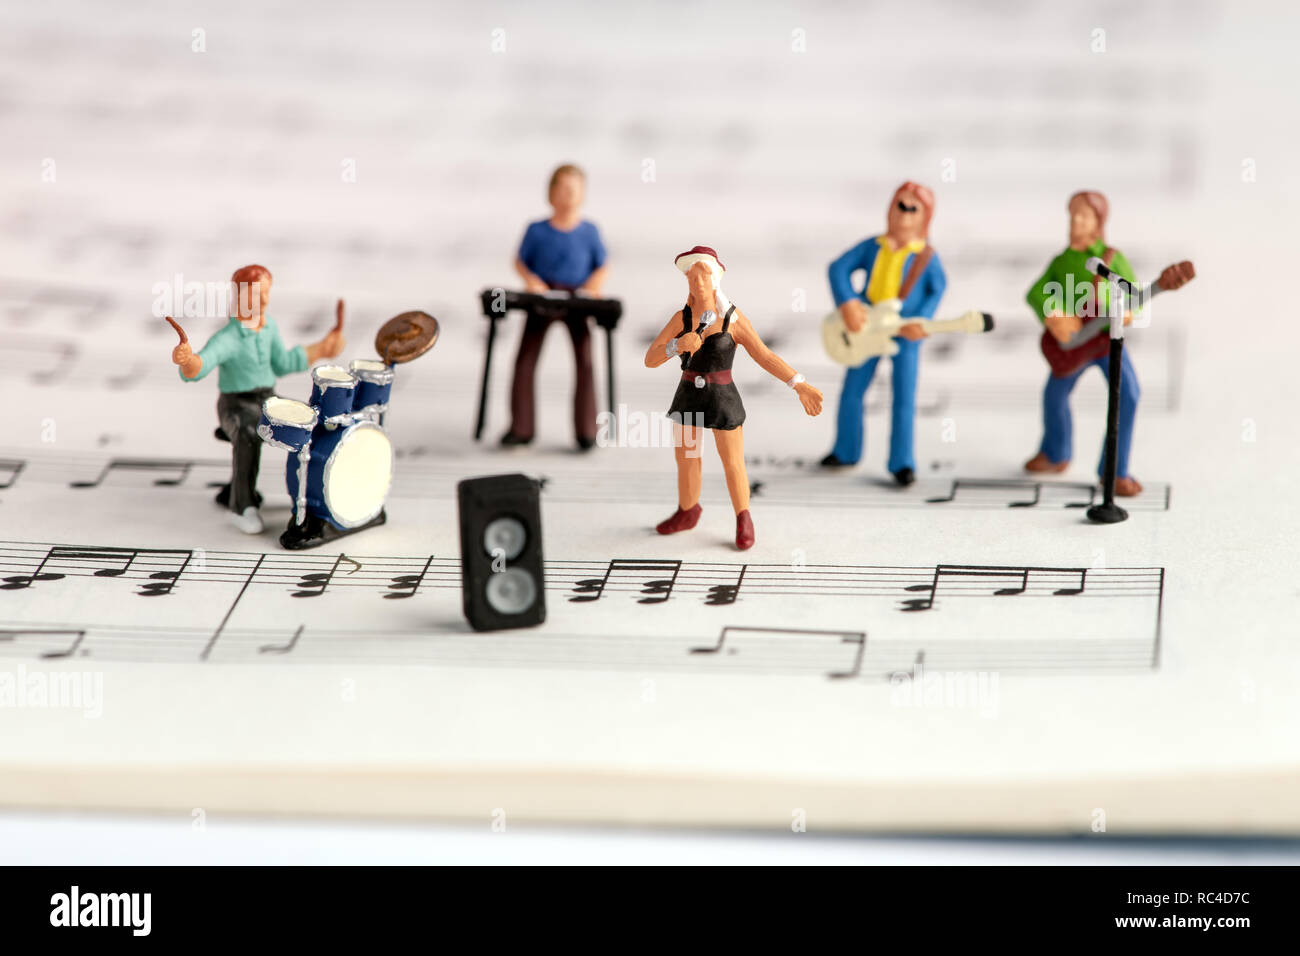 Rock band miniature people performing on open music book with notes, viewed in tilt-shift selective focus, from high angle - Stock Image